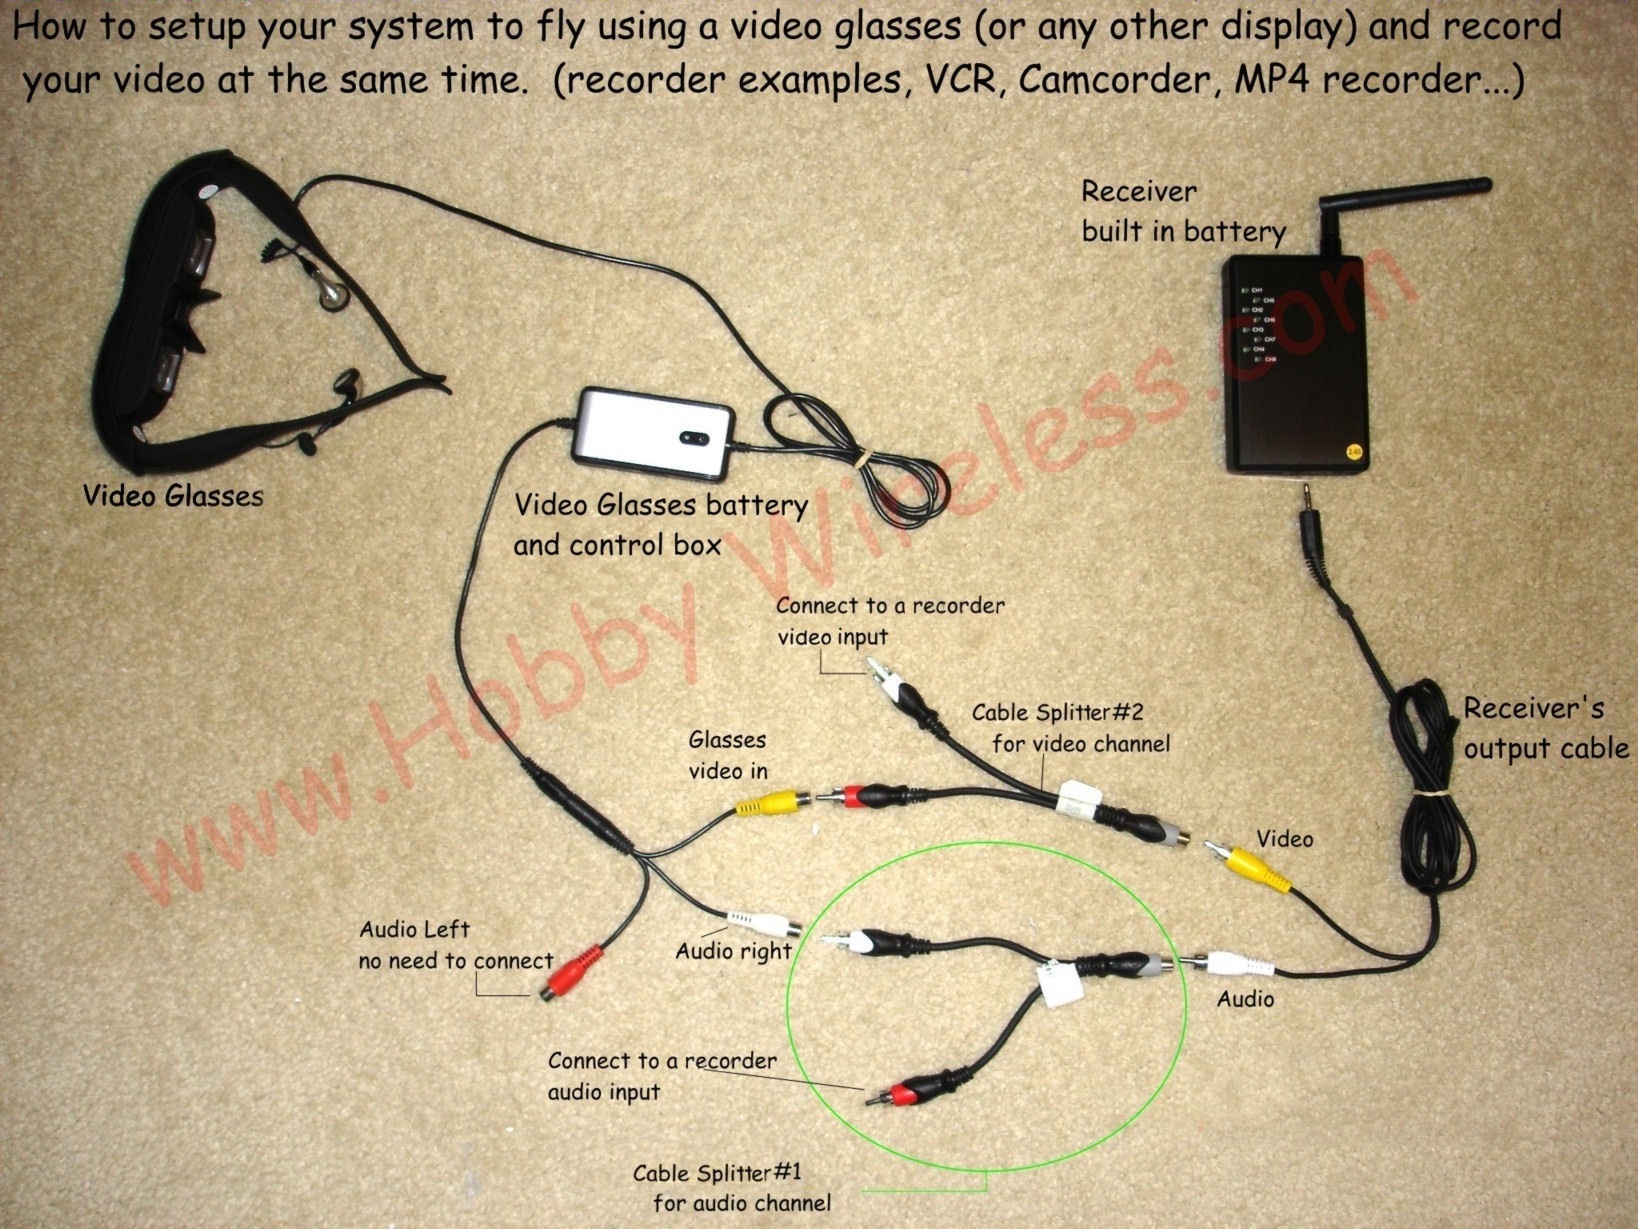 technical help hobby wireless your best stop for drones fpv 25 how to connect the video glasses and a recorder to the receiver using splitter cables